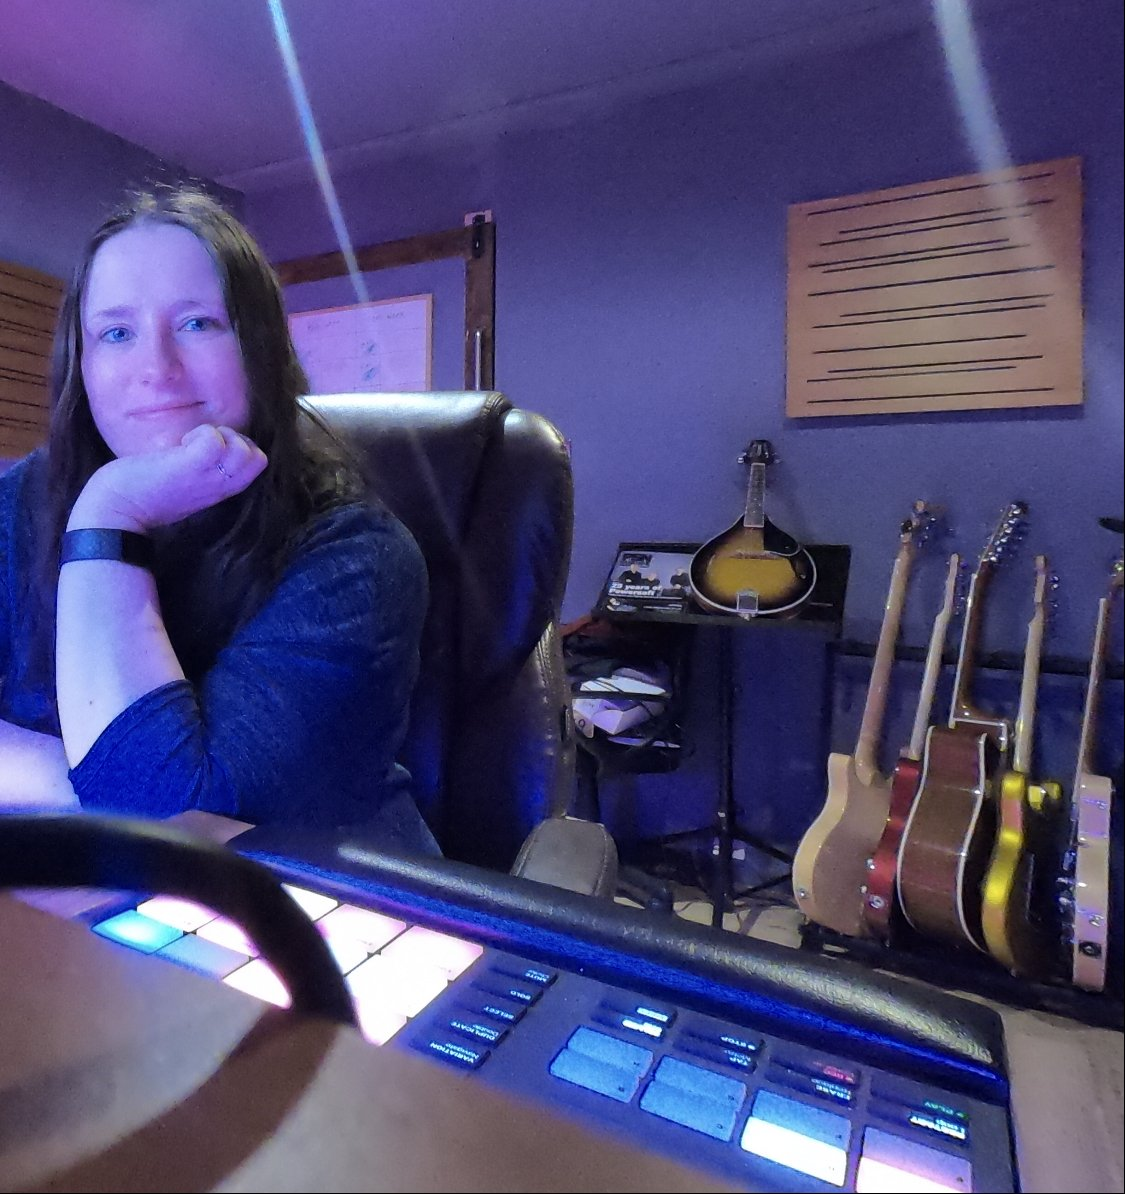 Weekends don't exist when you're a producer. Here's me in the studio today. Wouldn't want to be anywhere else! #producerlife #musicproducer #femaleproducer #womeninmusic #womeninaudio #Producer #recordingstudio #studiolife #studiopic.twitter.com/5amnROygY1